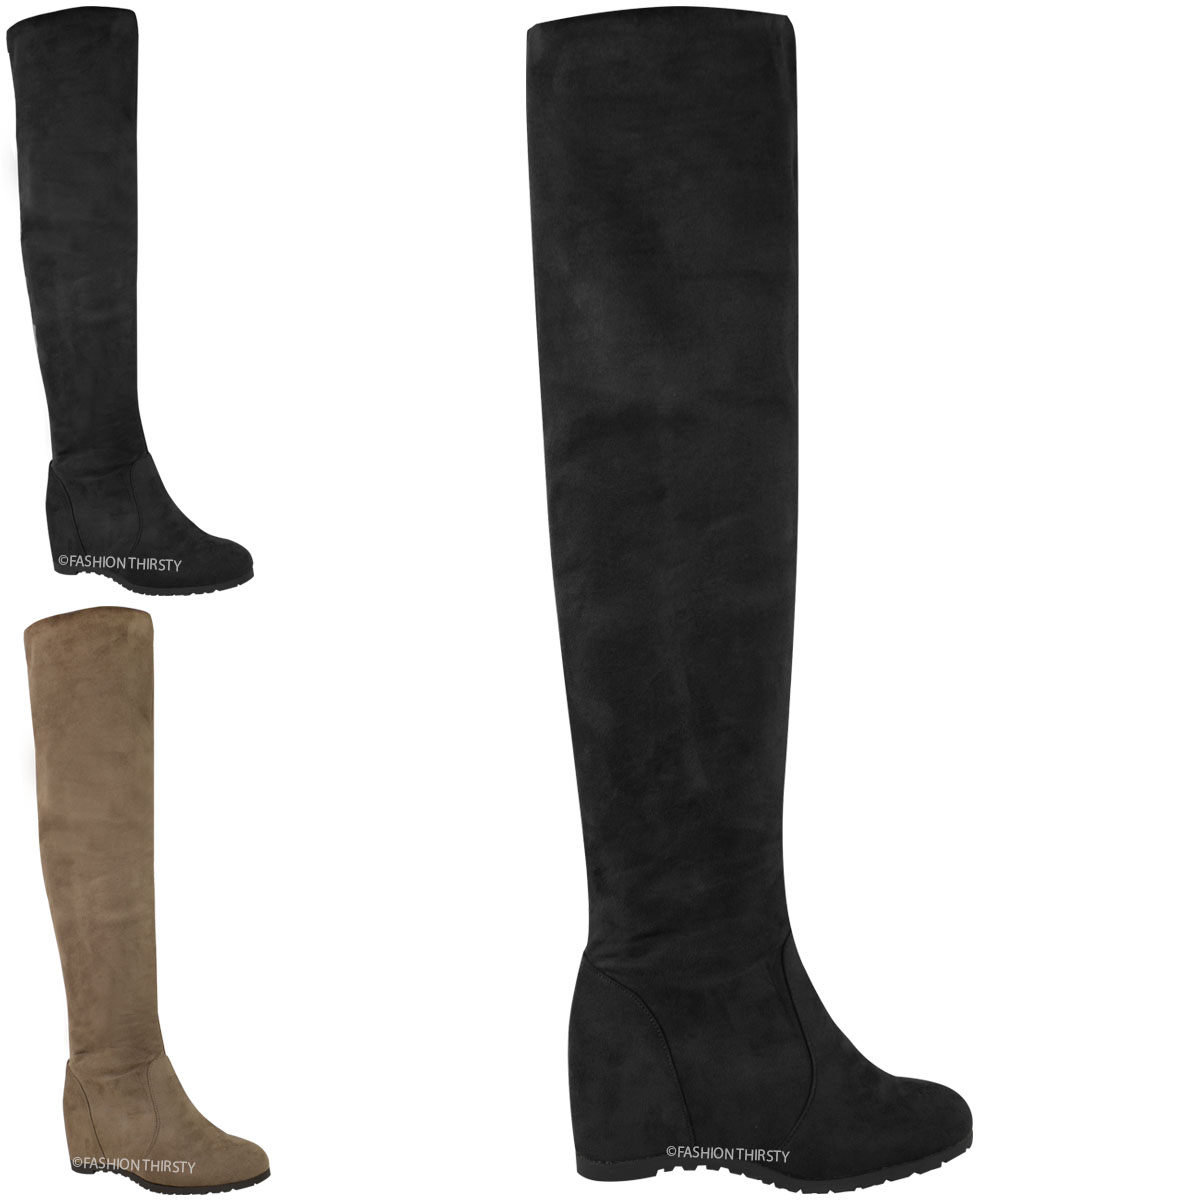 Fashion Thirsty Thigh High Boots